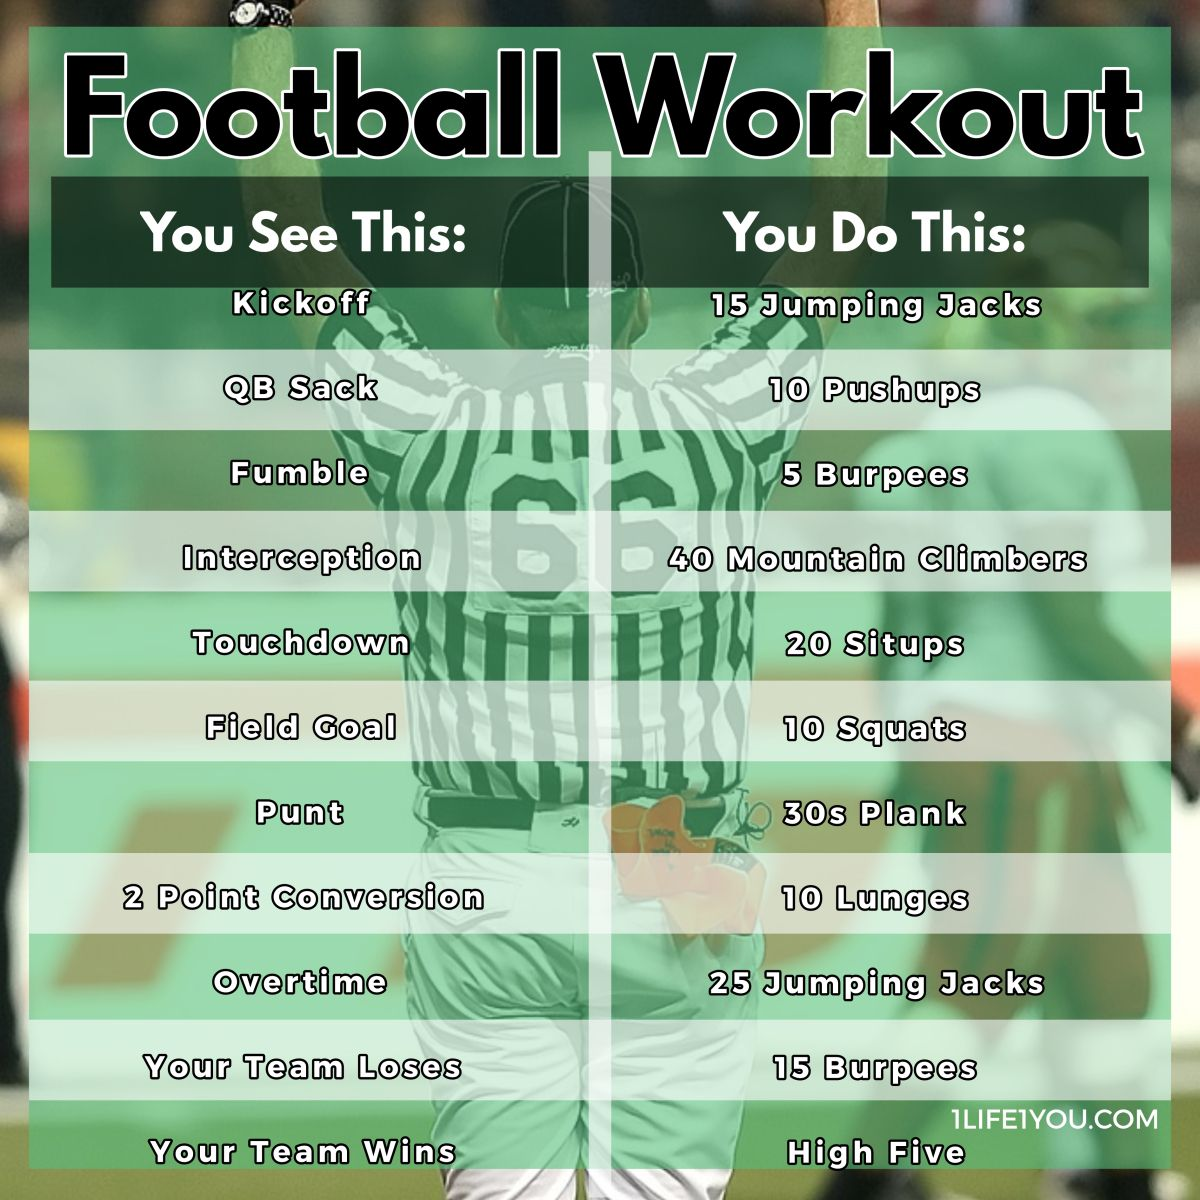 Football workout challenge in 2020 football workouts